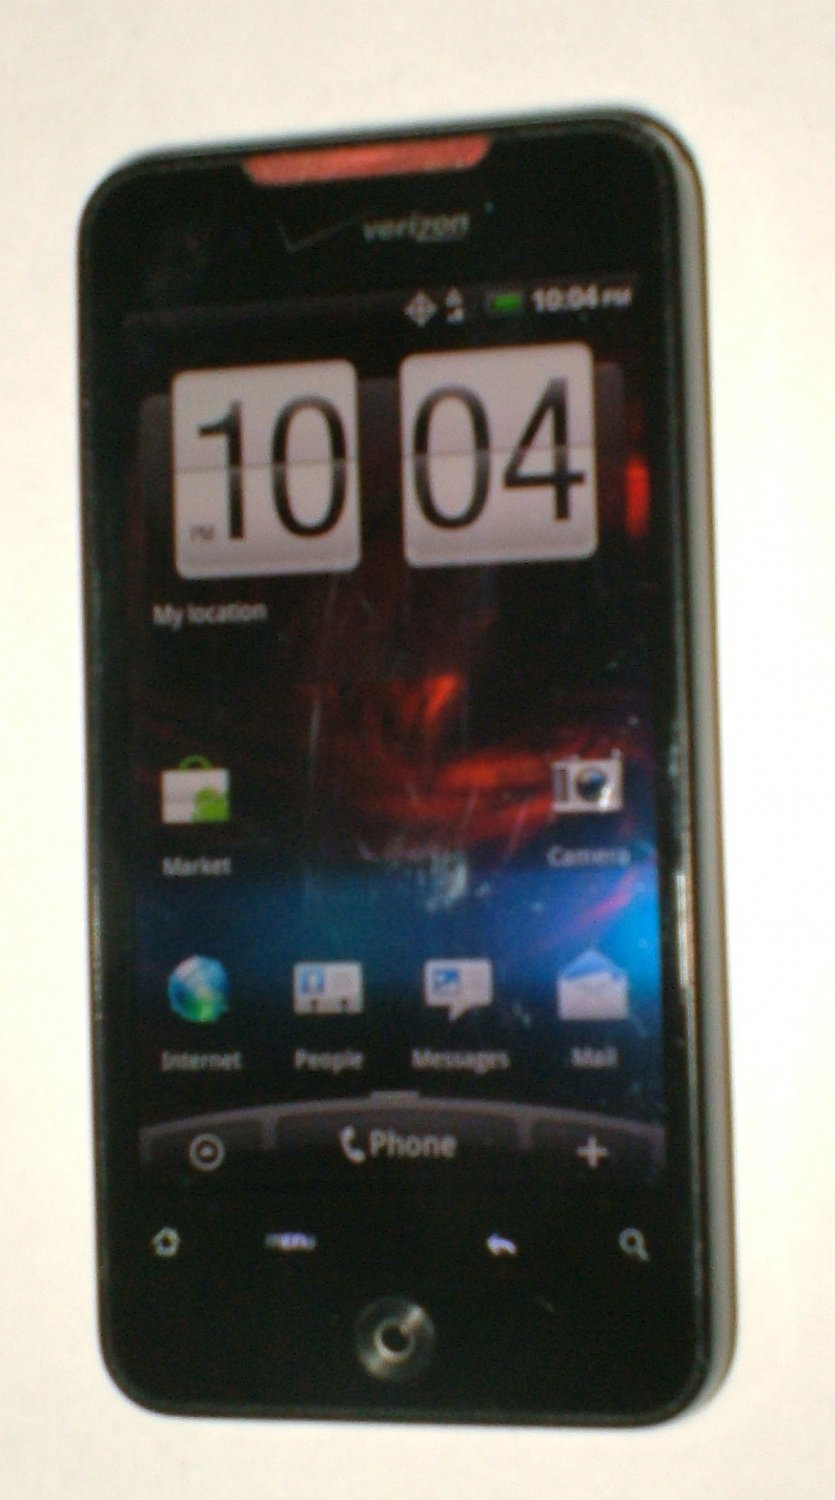 HTC Droid Incredible - ADR6300 (Verizon) Smartphone with USB cable